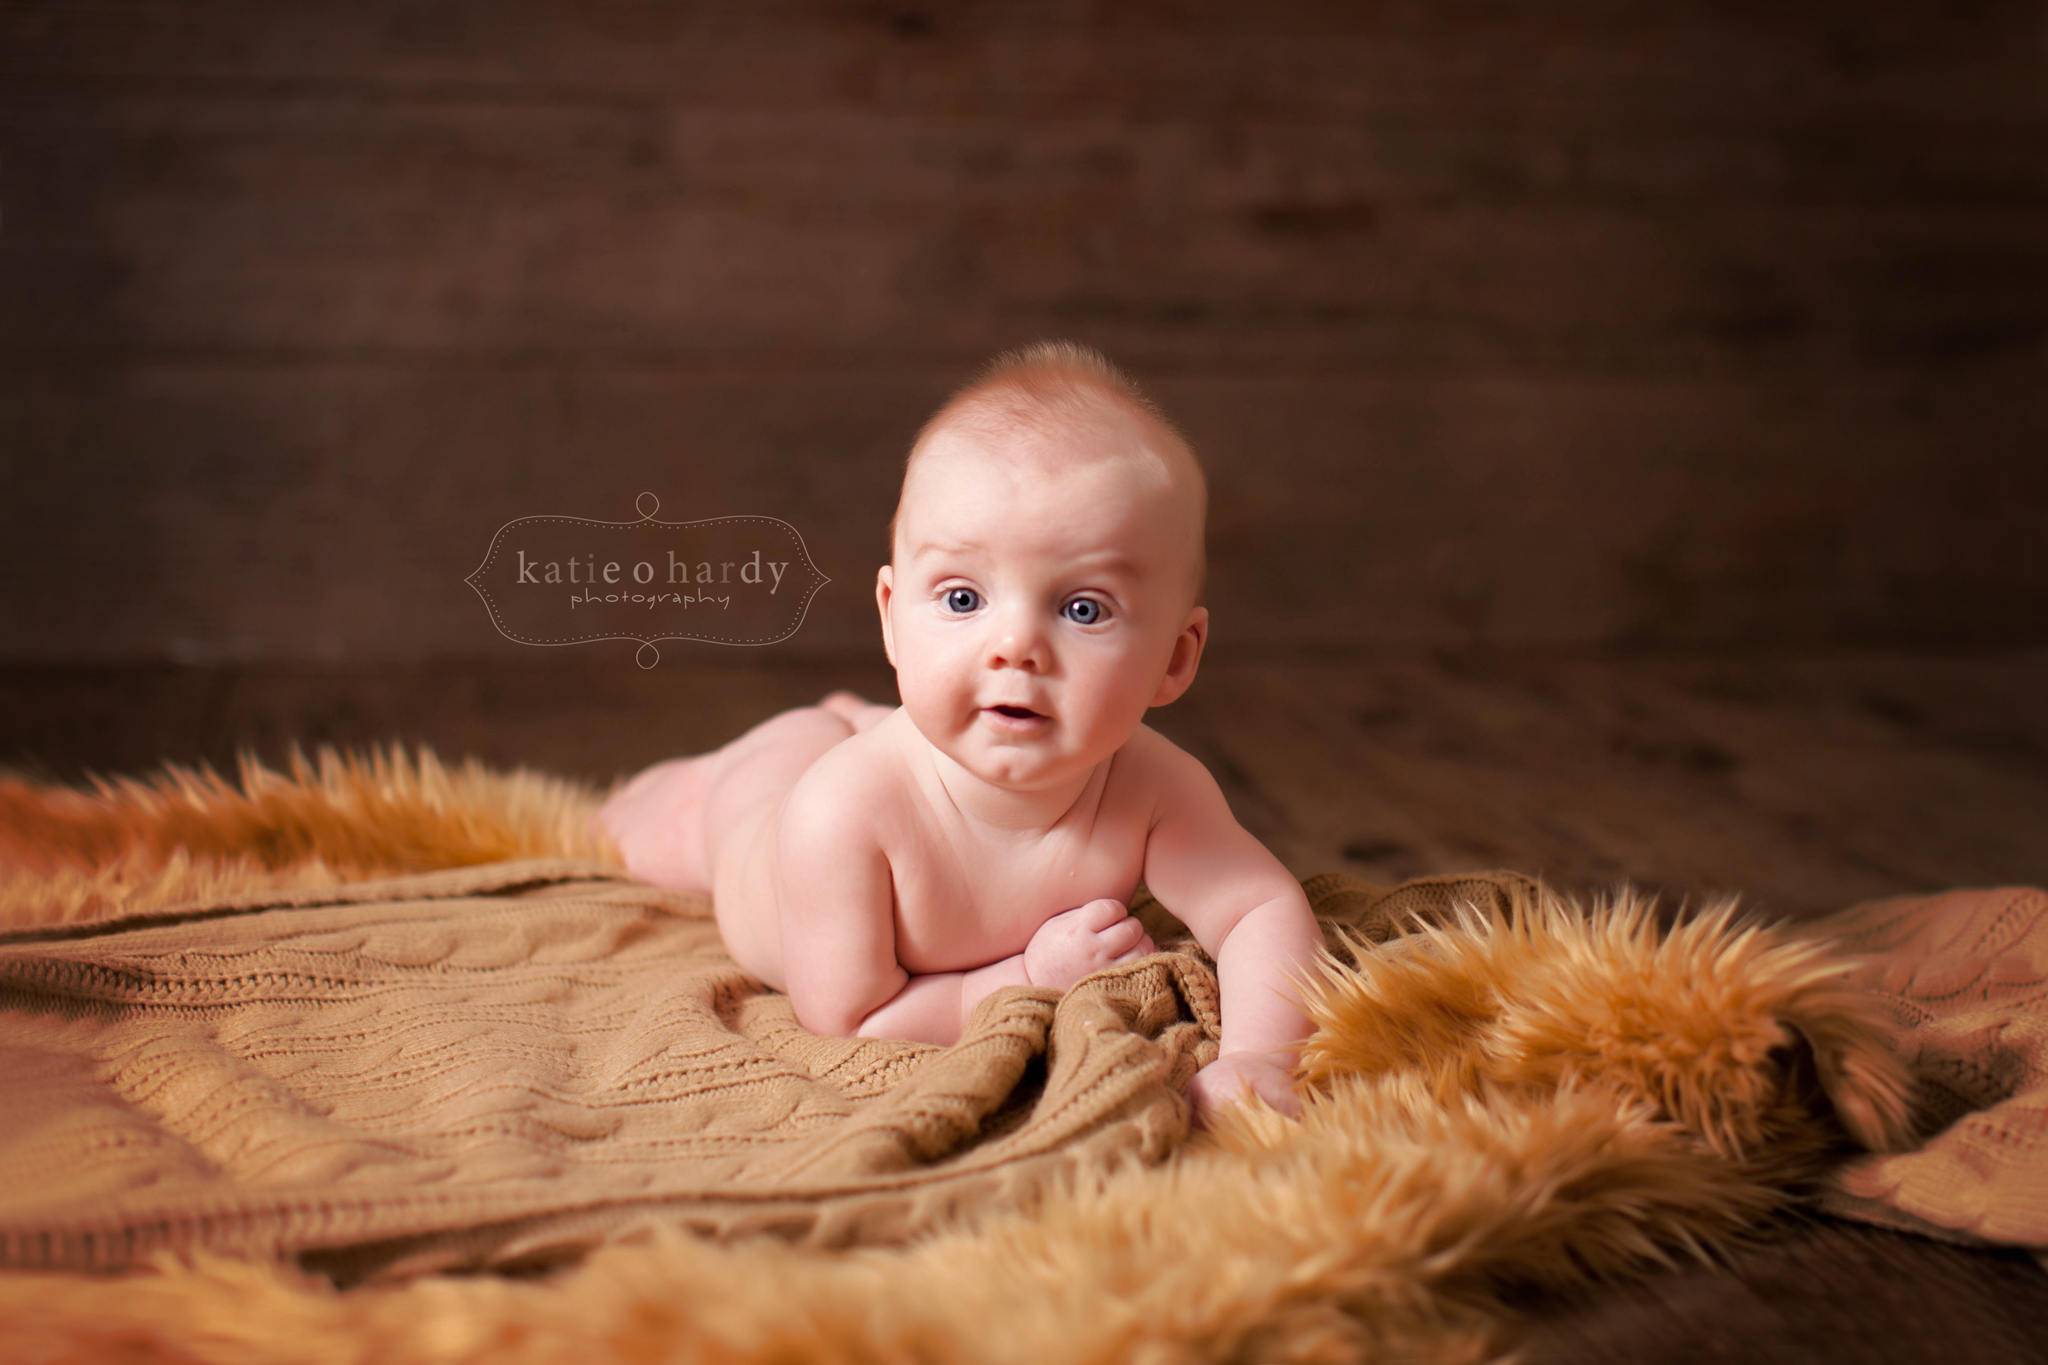 Katie O Hardy Photography Tutorials How To S And